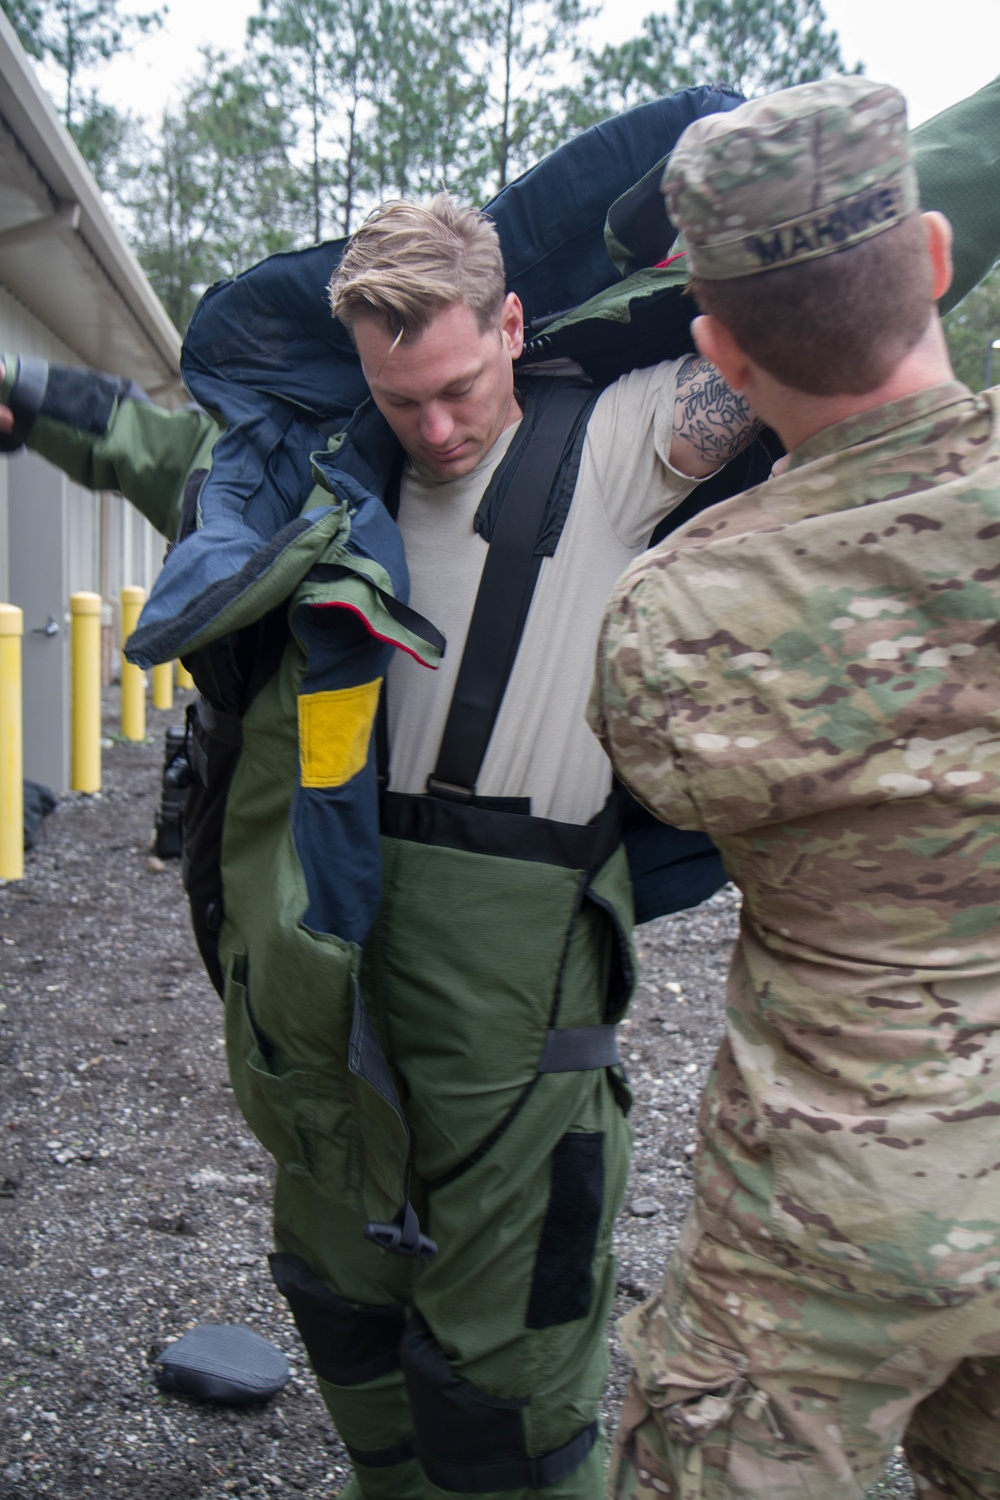 221st Explosive Ordnance Disposal Company – Mission Ready